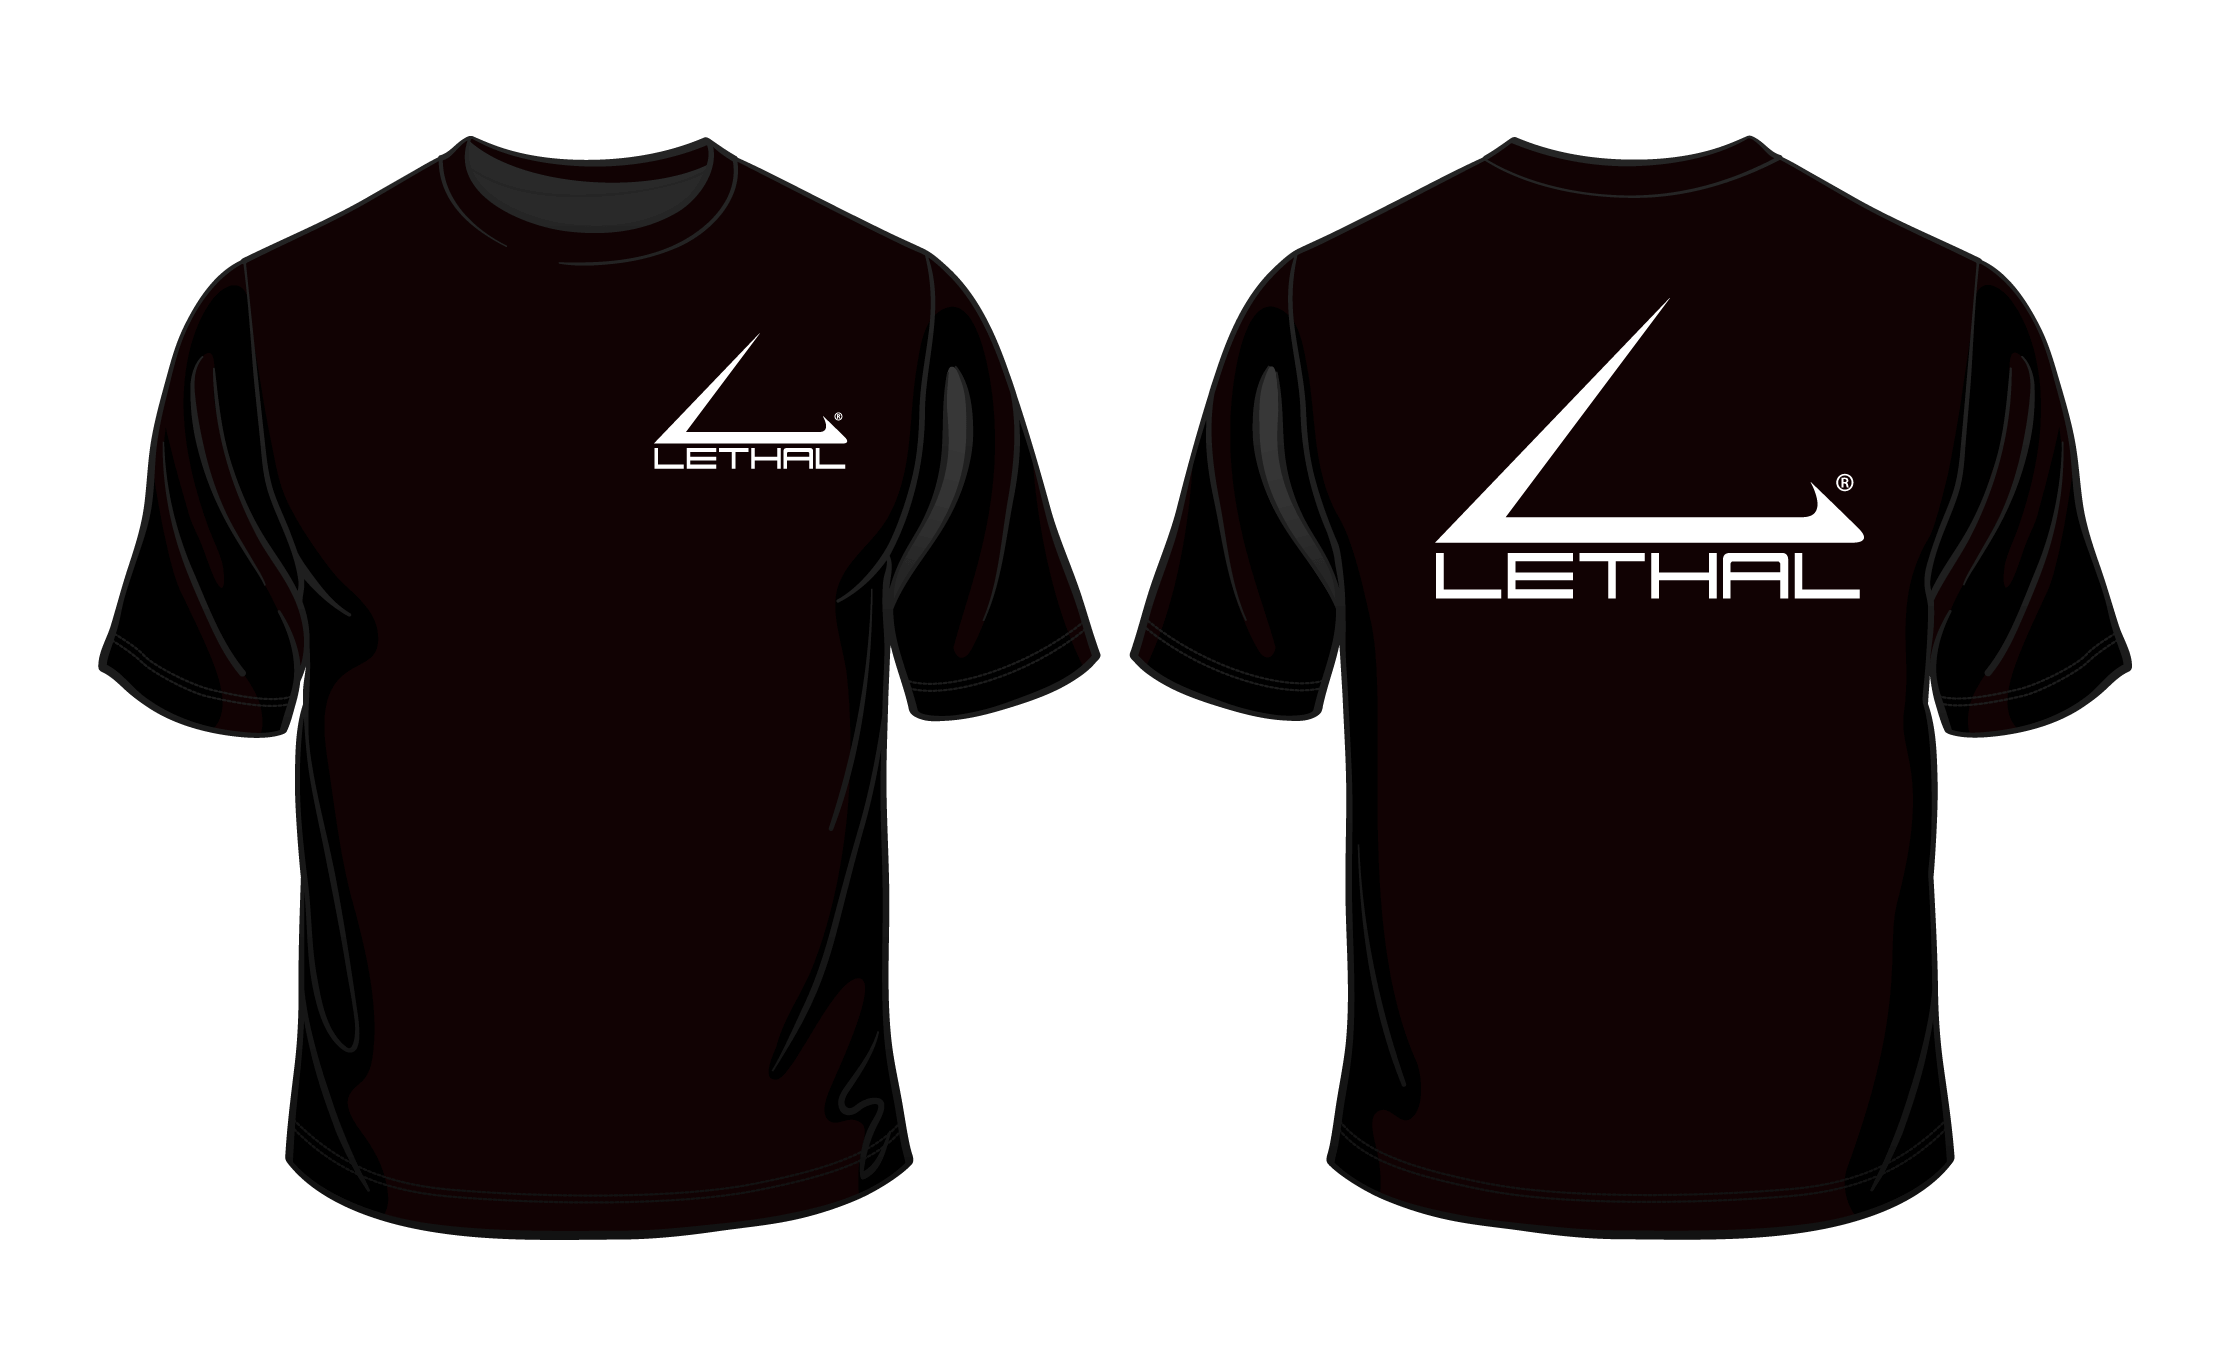 Black tshirt front and back png. Lethal logo t shirt